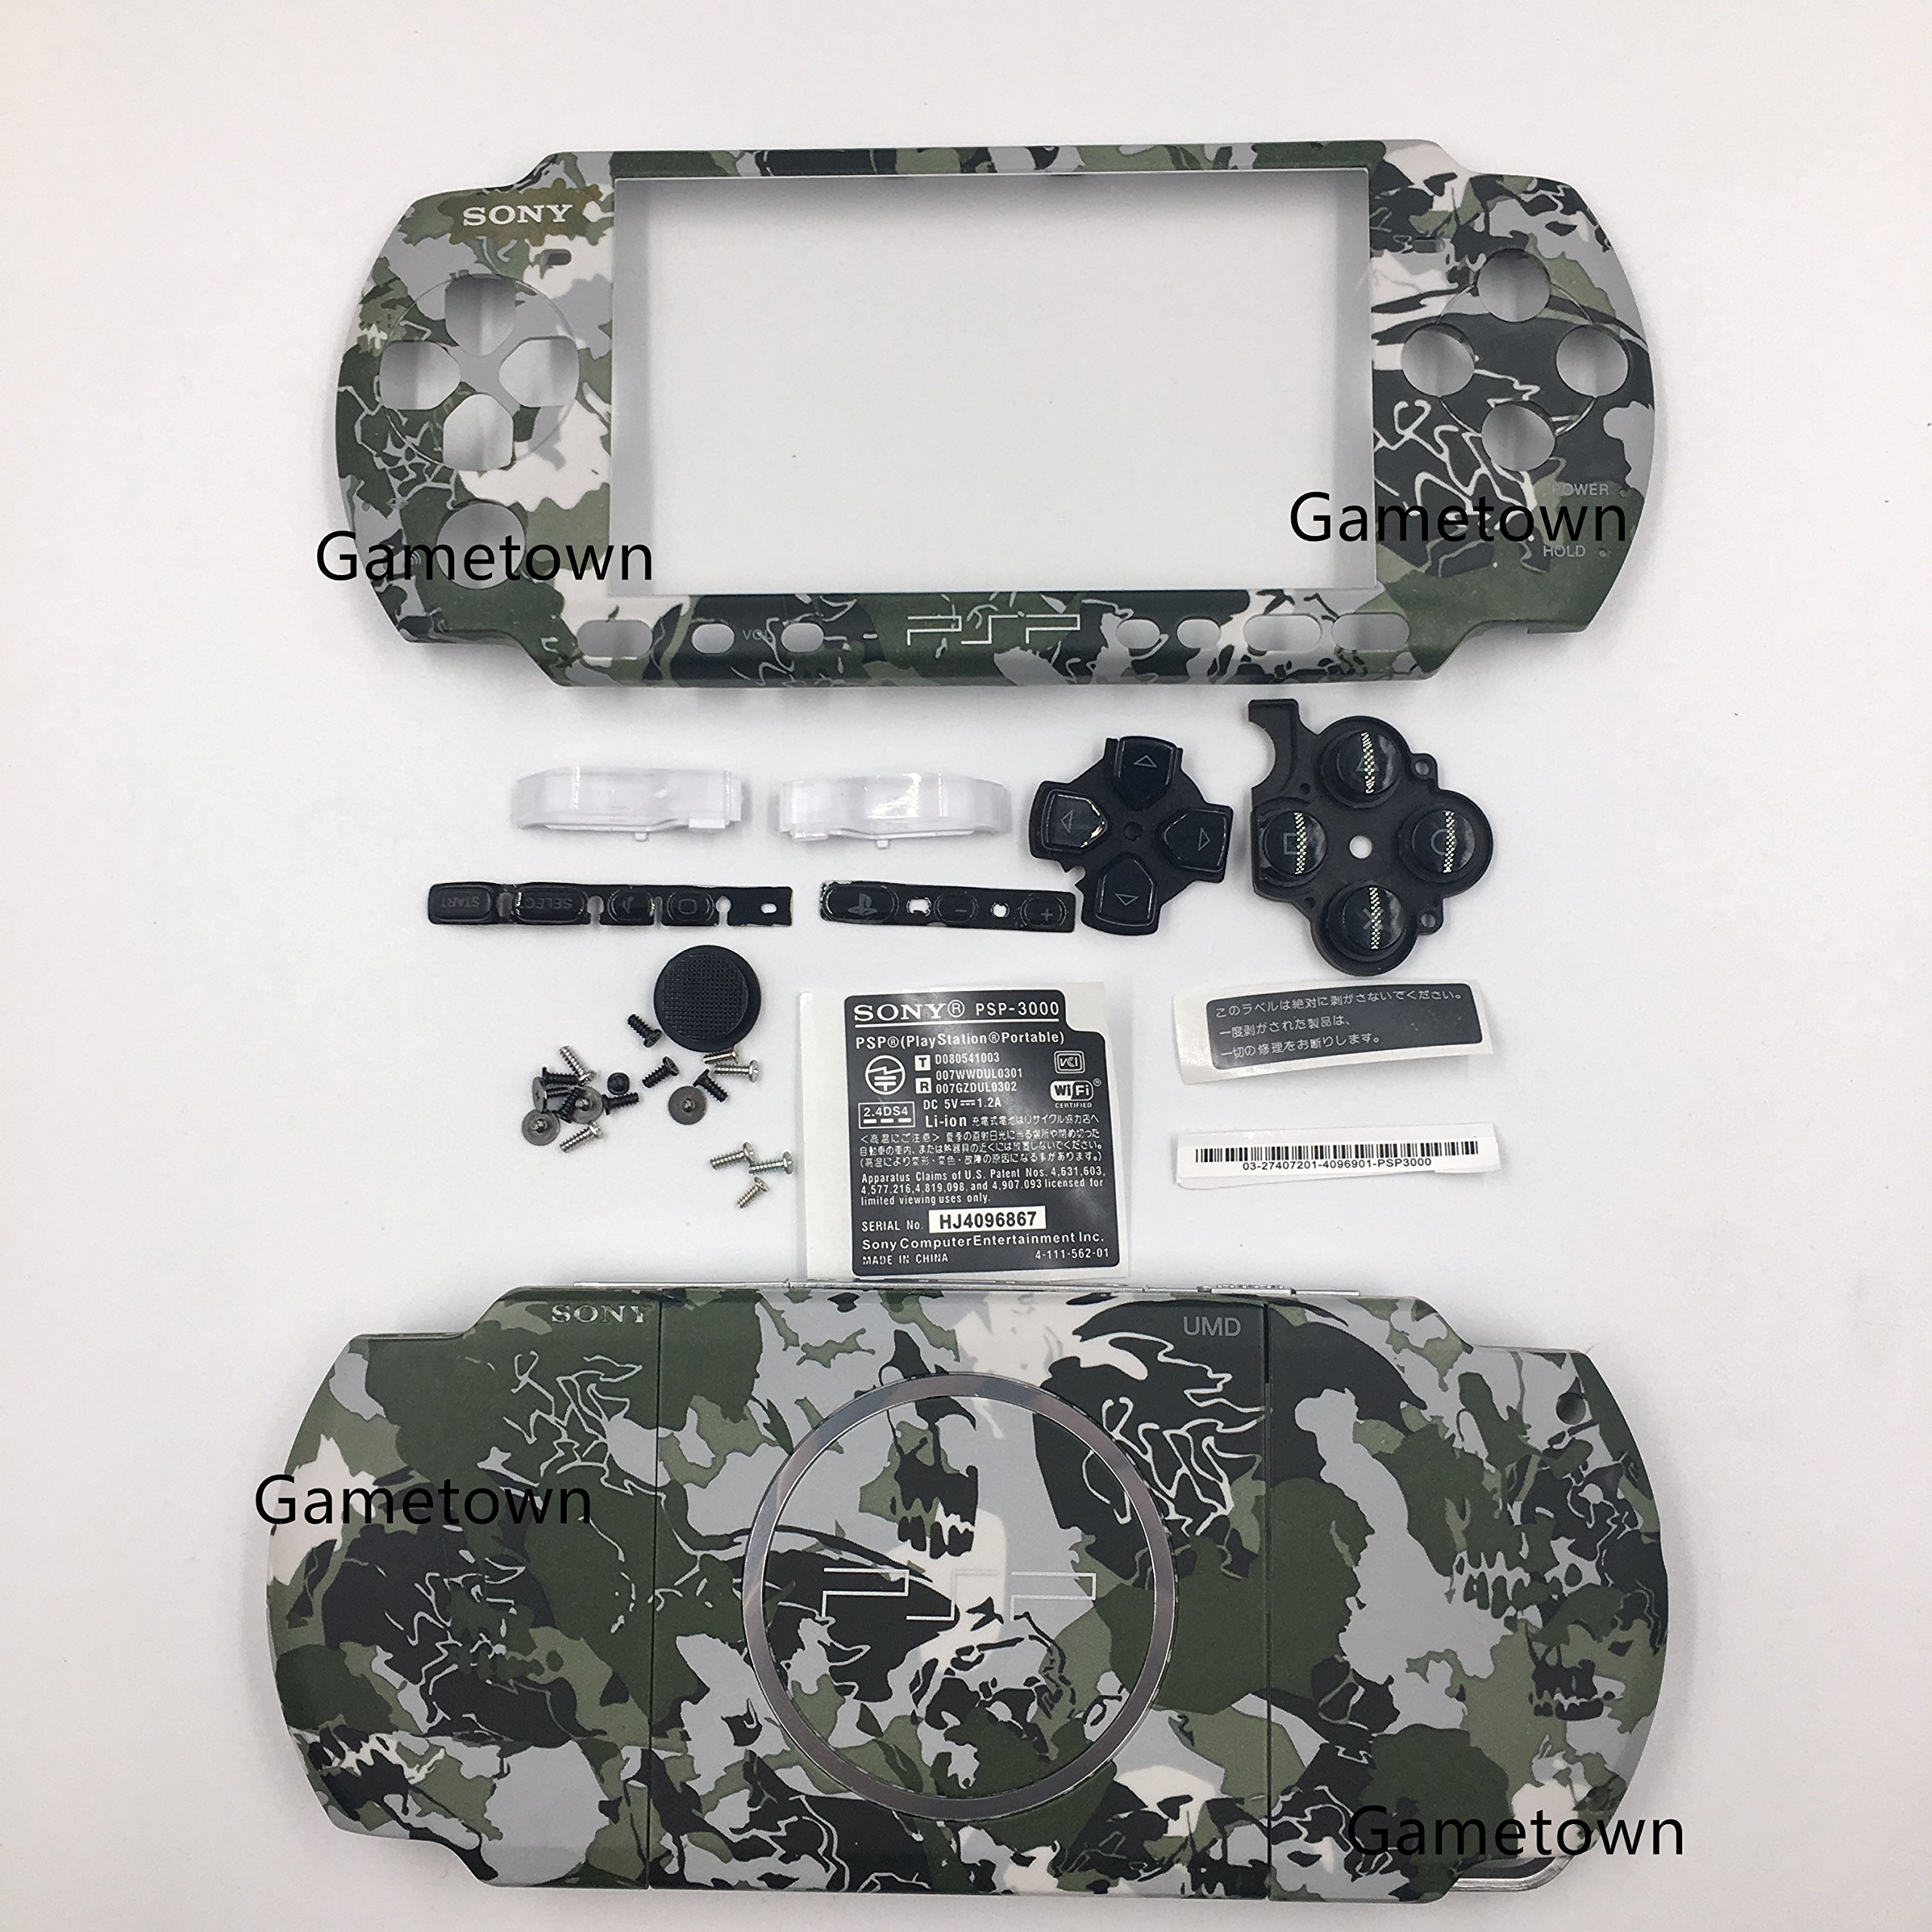 NEW Style Sony PSP 3000 Console Full Housing Shell Cover With Button Set -Camouflage.